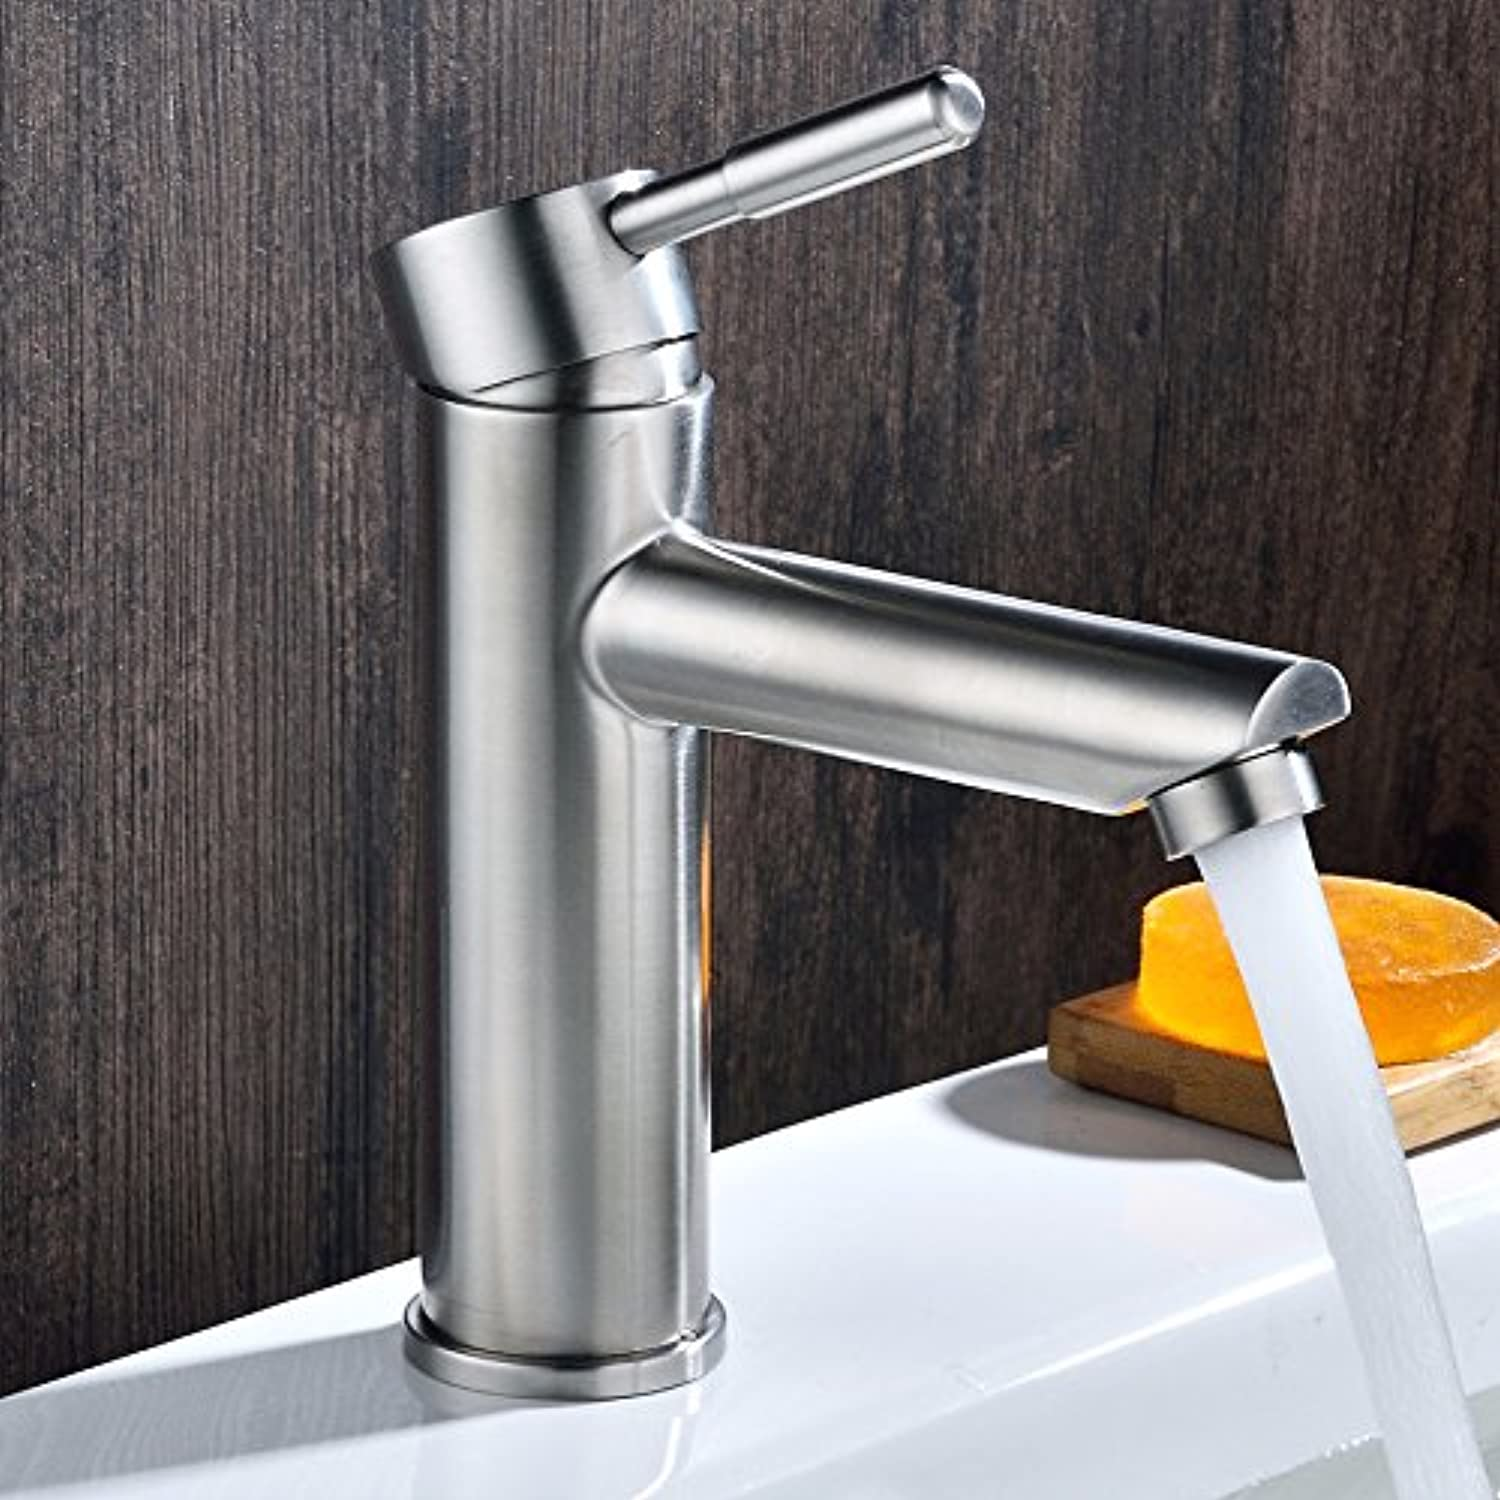 Aawang Basin Sink Mixer Tap Bathroom Faucet 304 Stainless Steel Faucet Lead Free